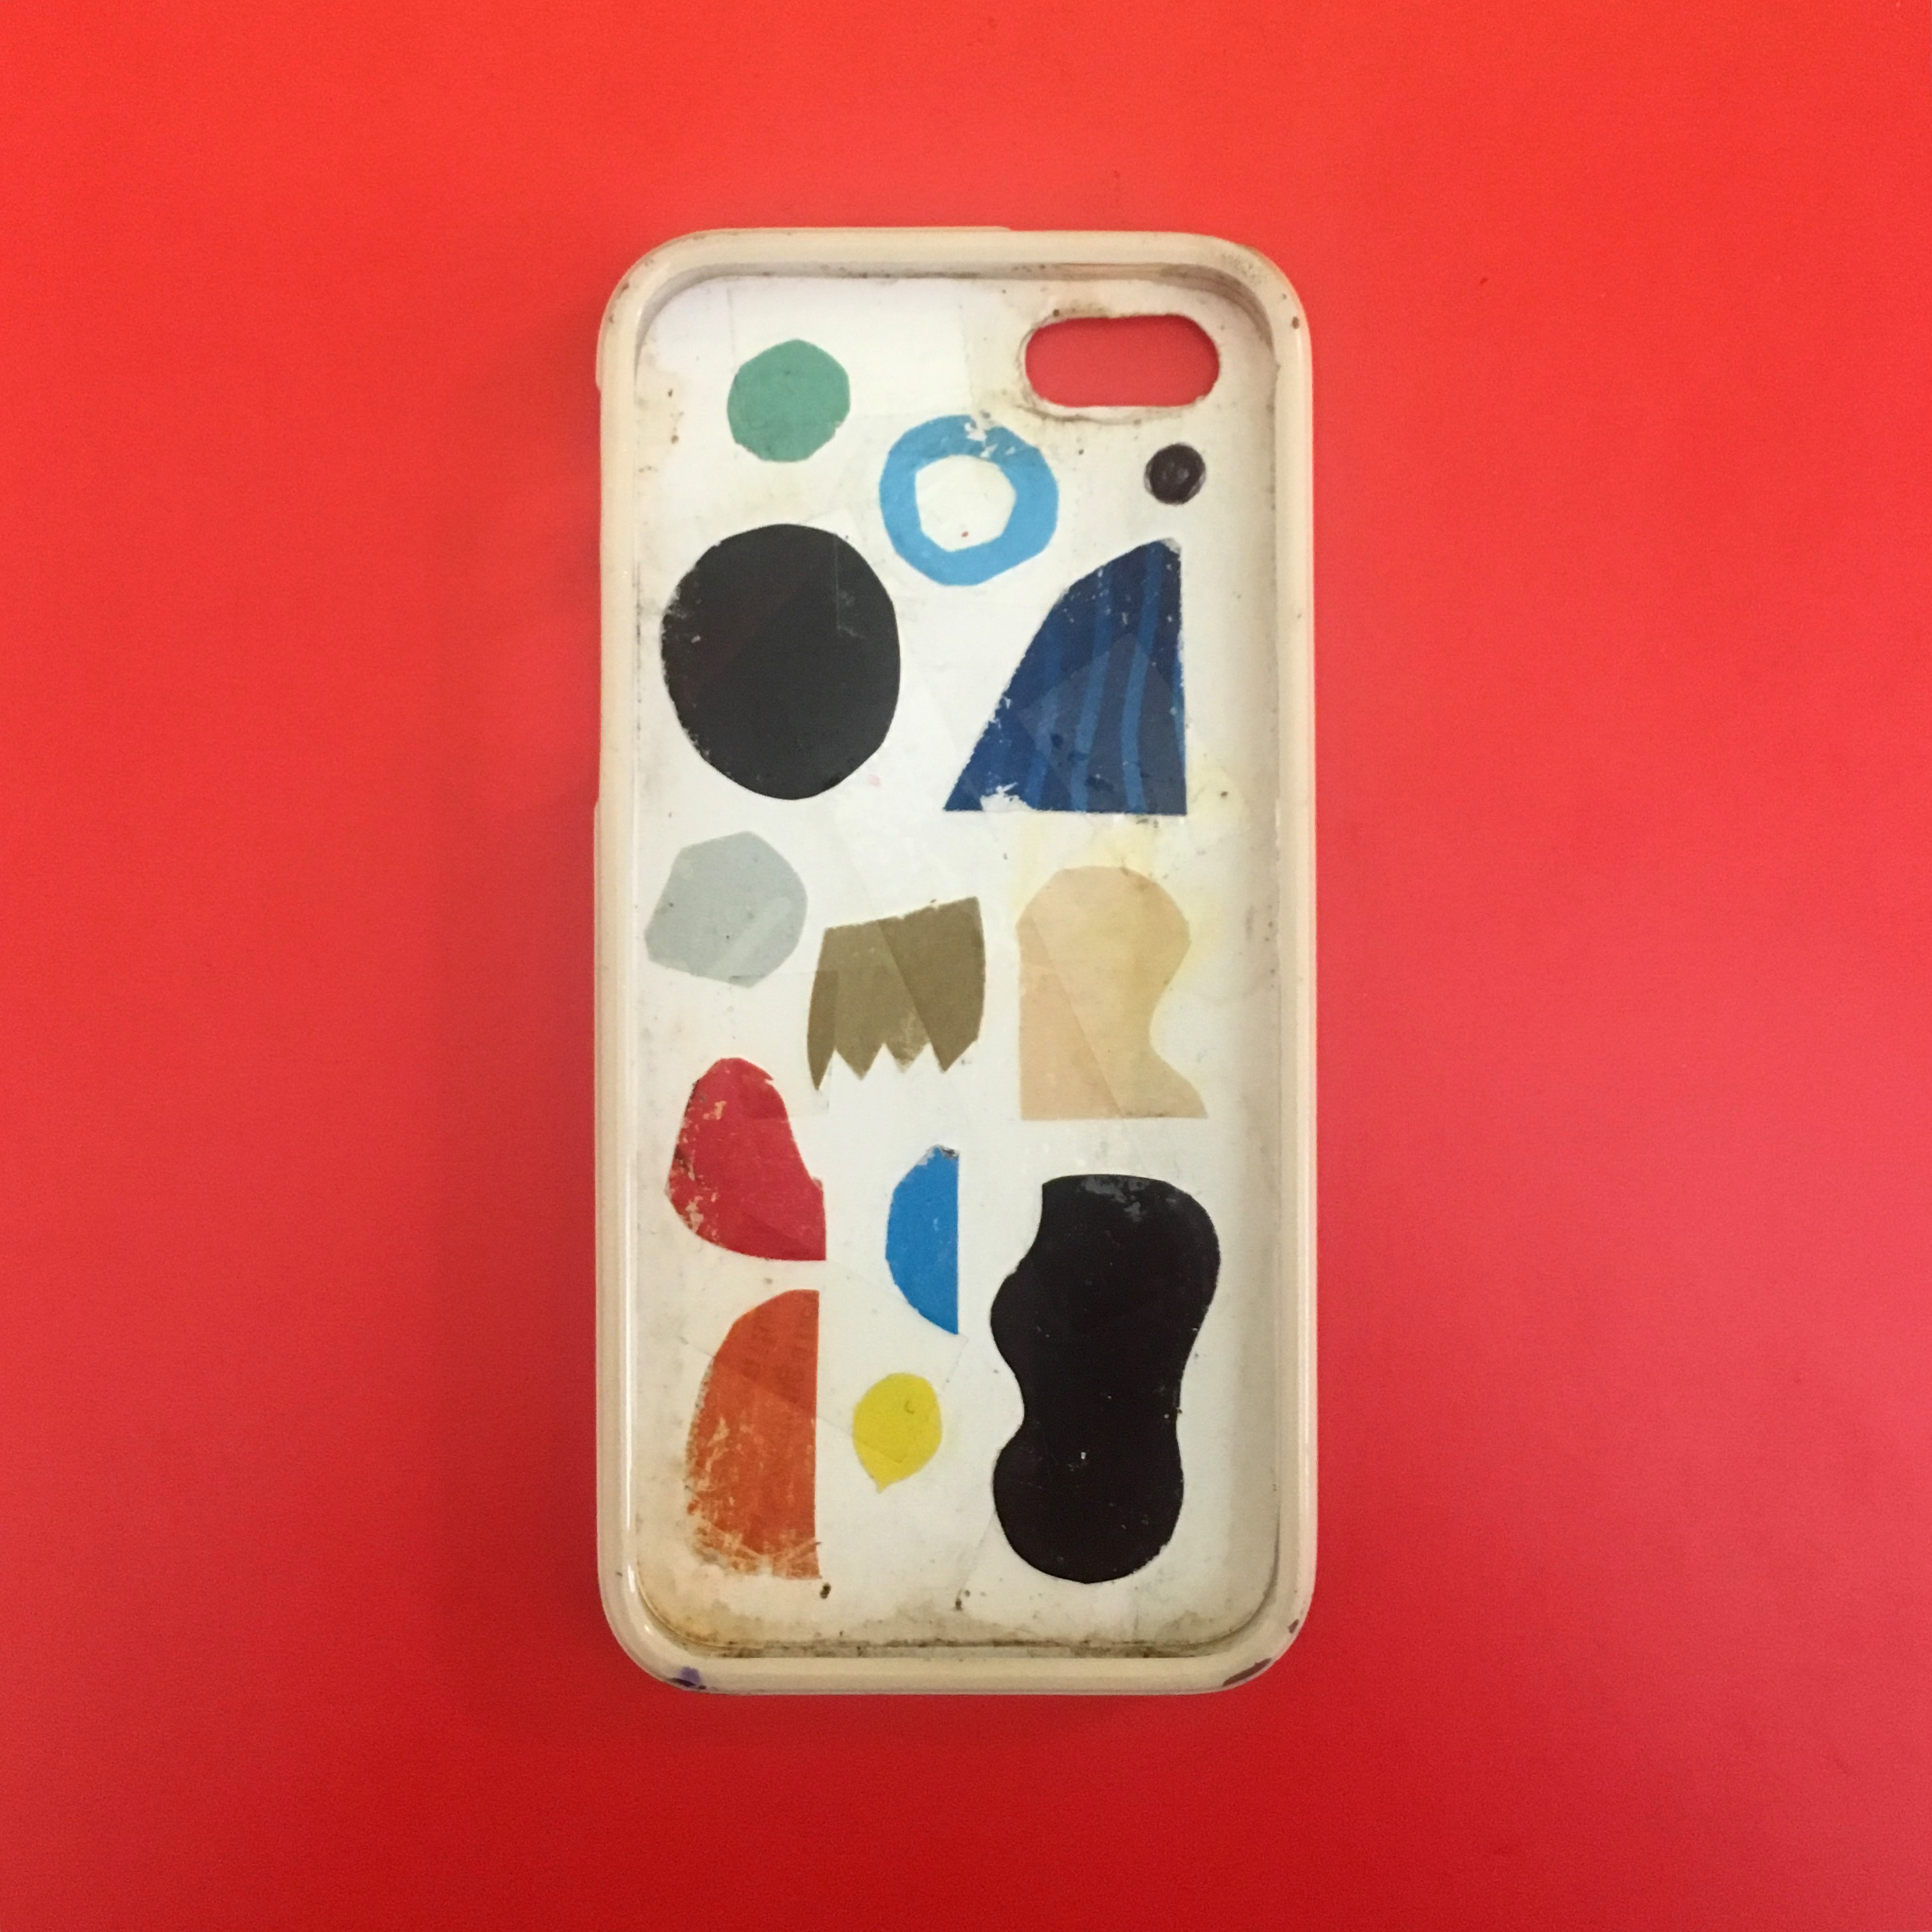 collage with bright shapes on the inside of an iphone case